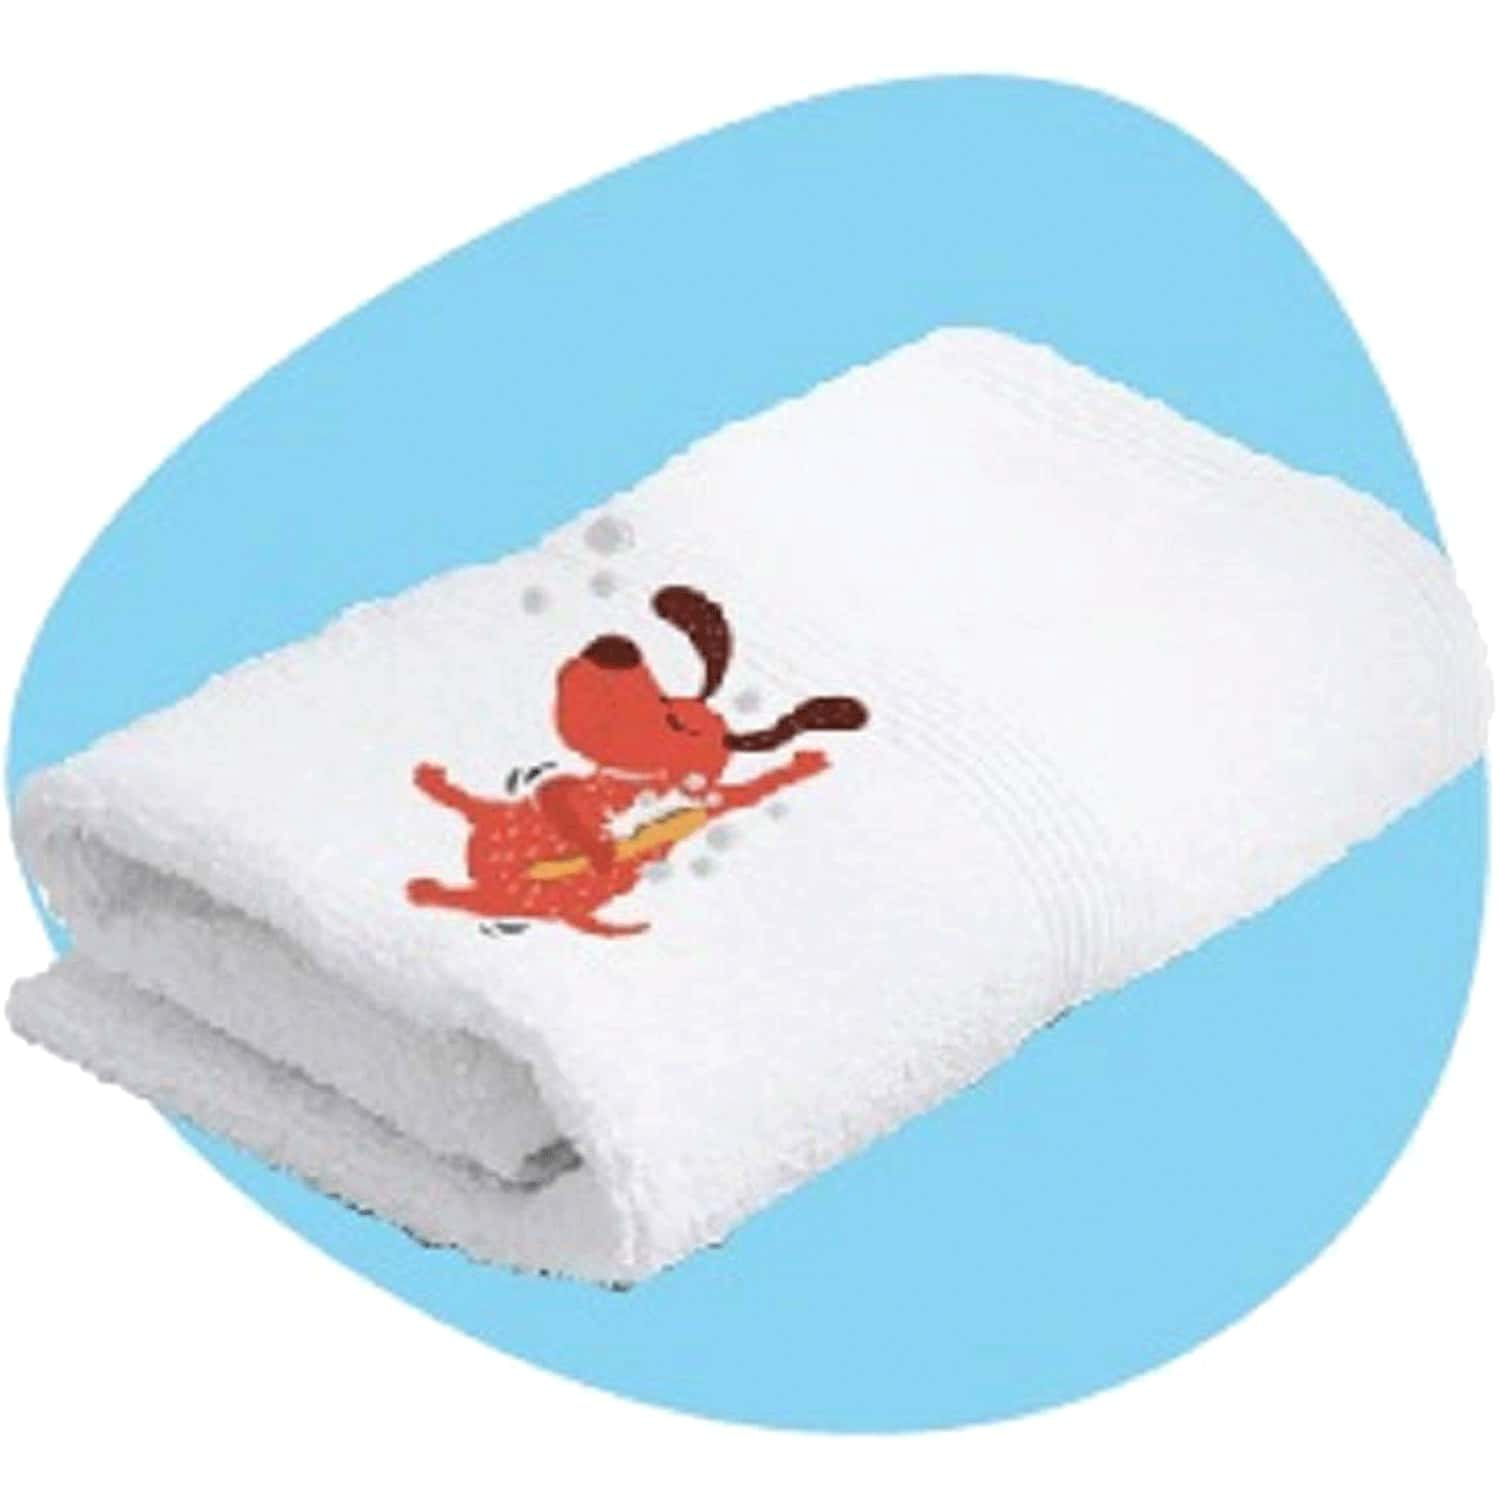 Captain Zack Cotton Signature Bath Towel For Dogs, Cats And Humans,250 G